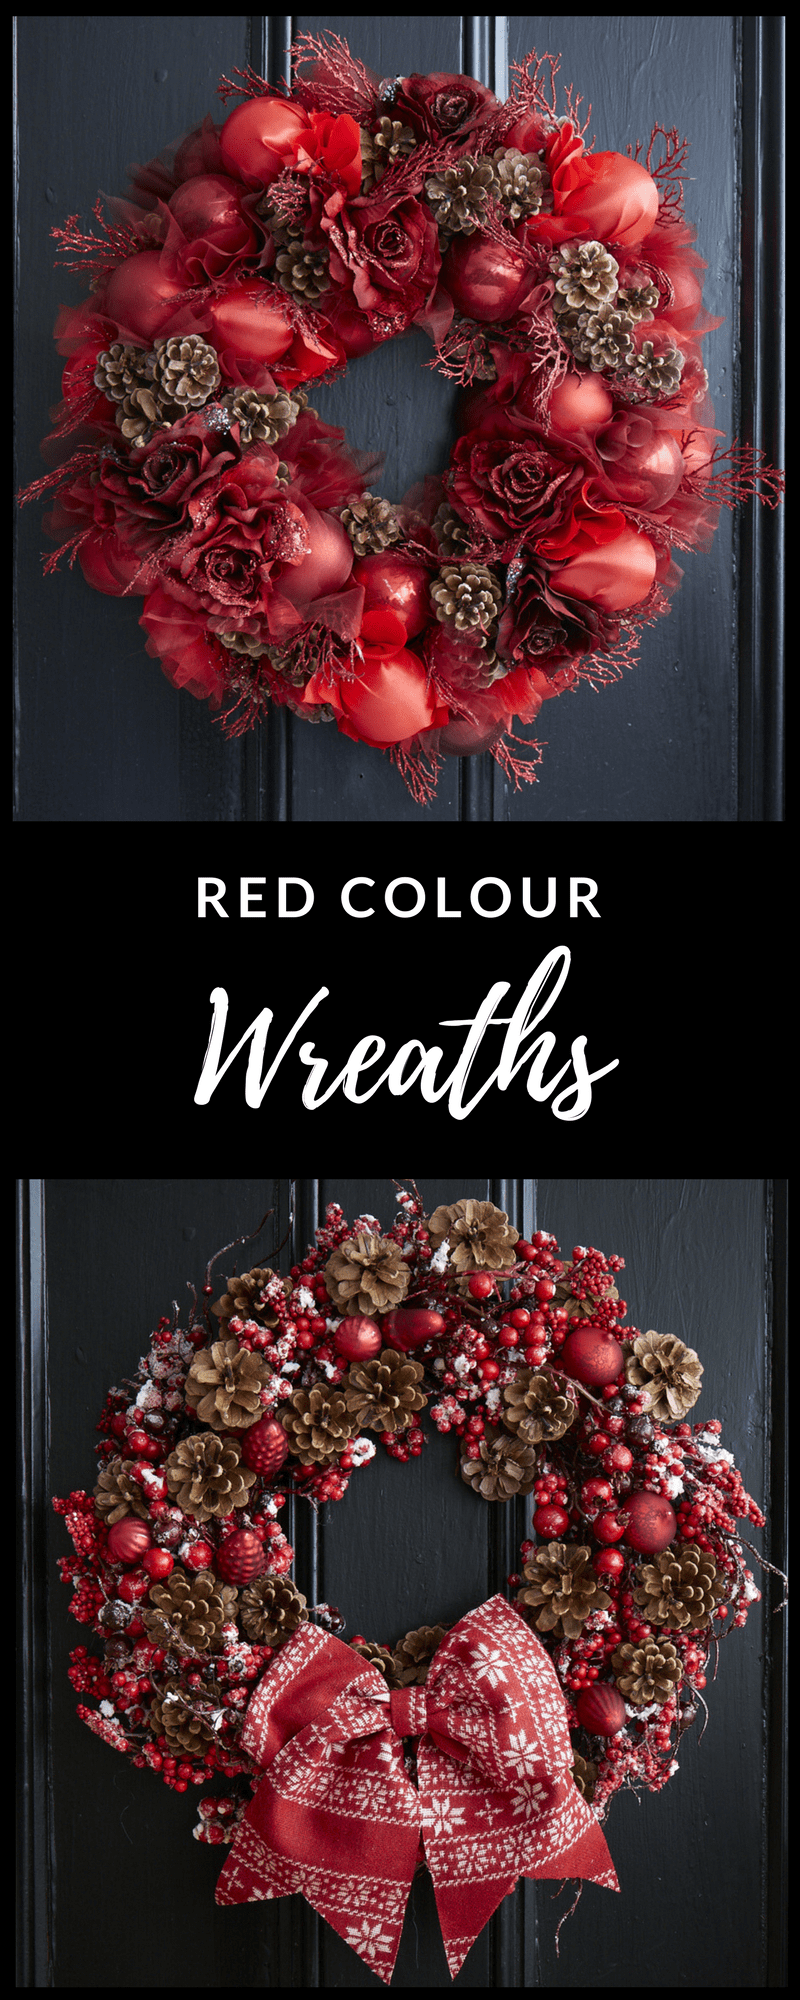 Christmas wreaths in red from Jane Packer